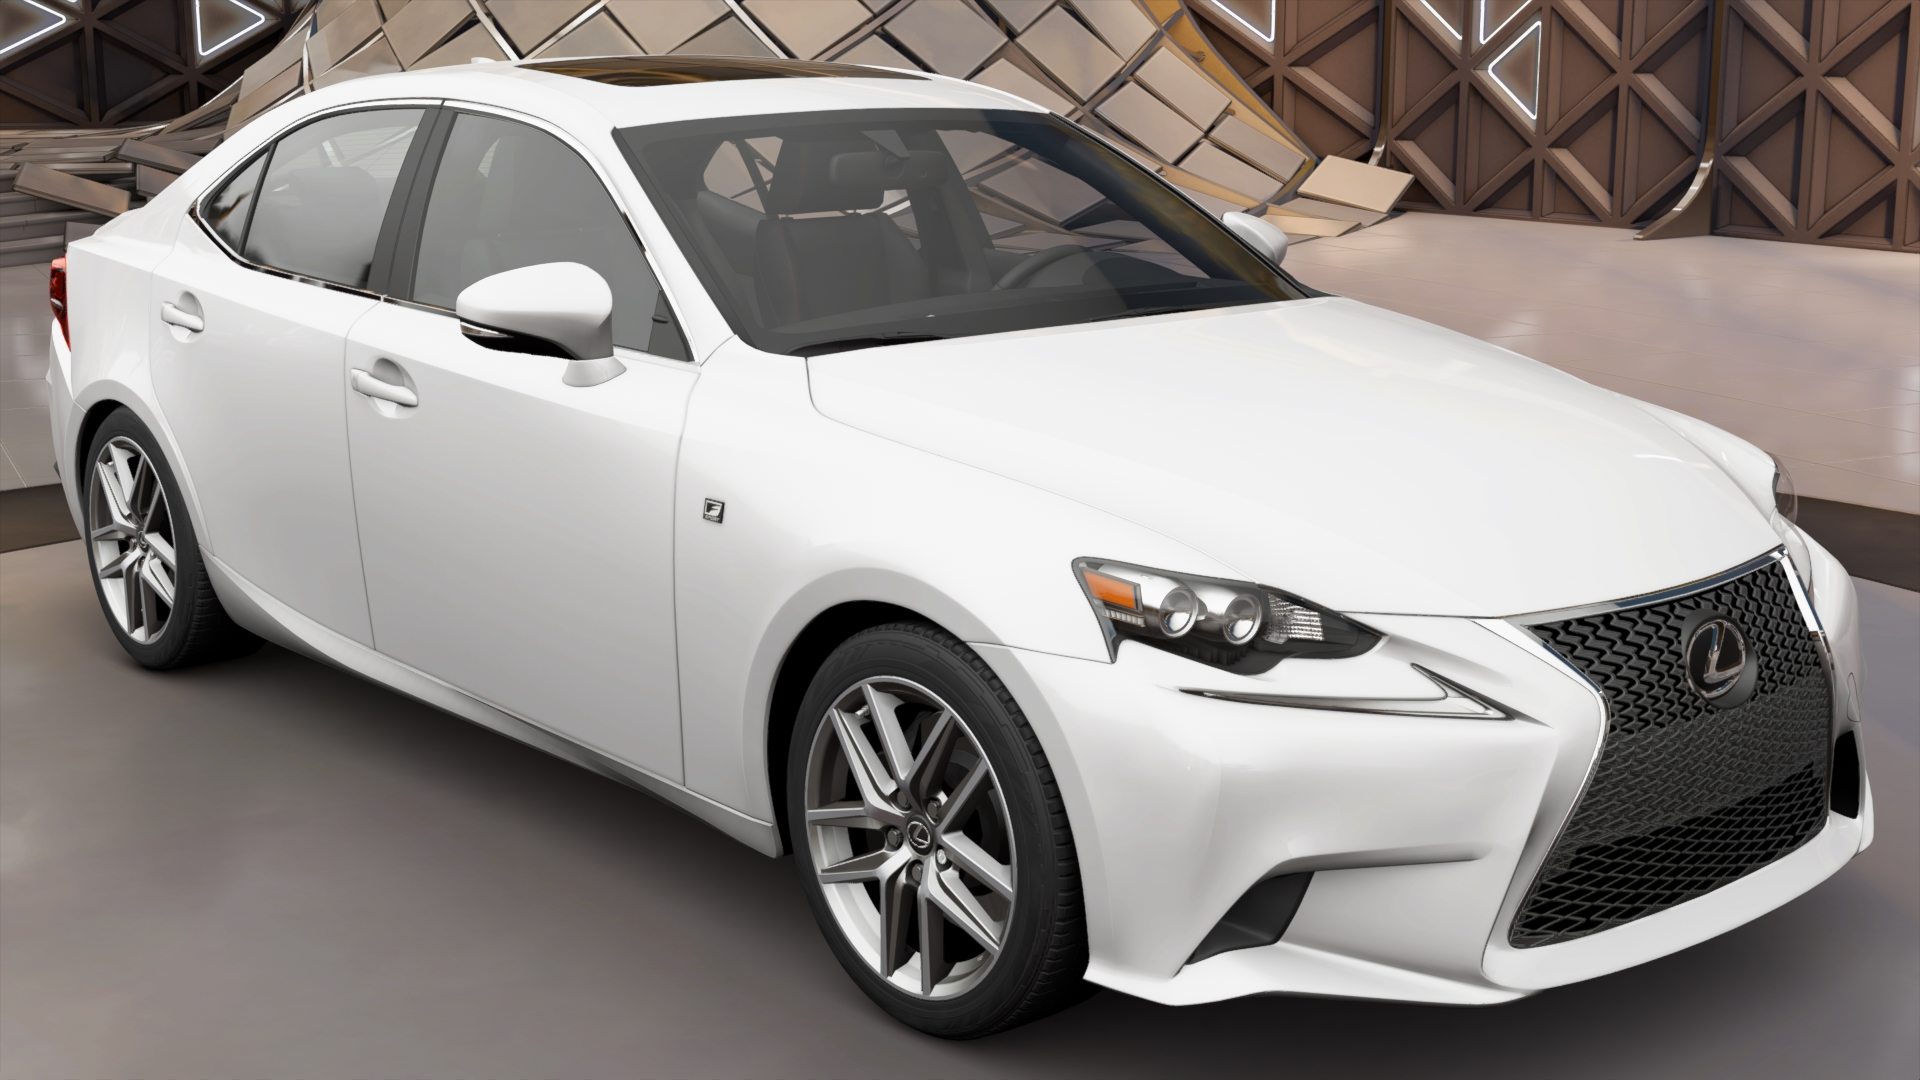 lexus is 350 f sport | forza motorsport wiki | fandom poweredwikia